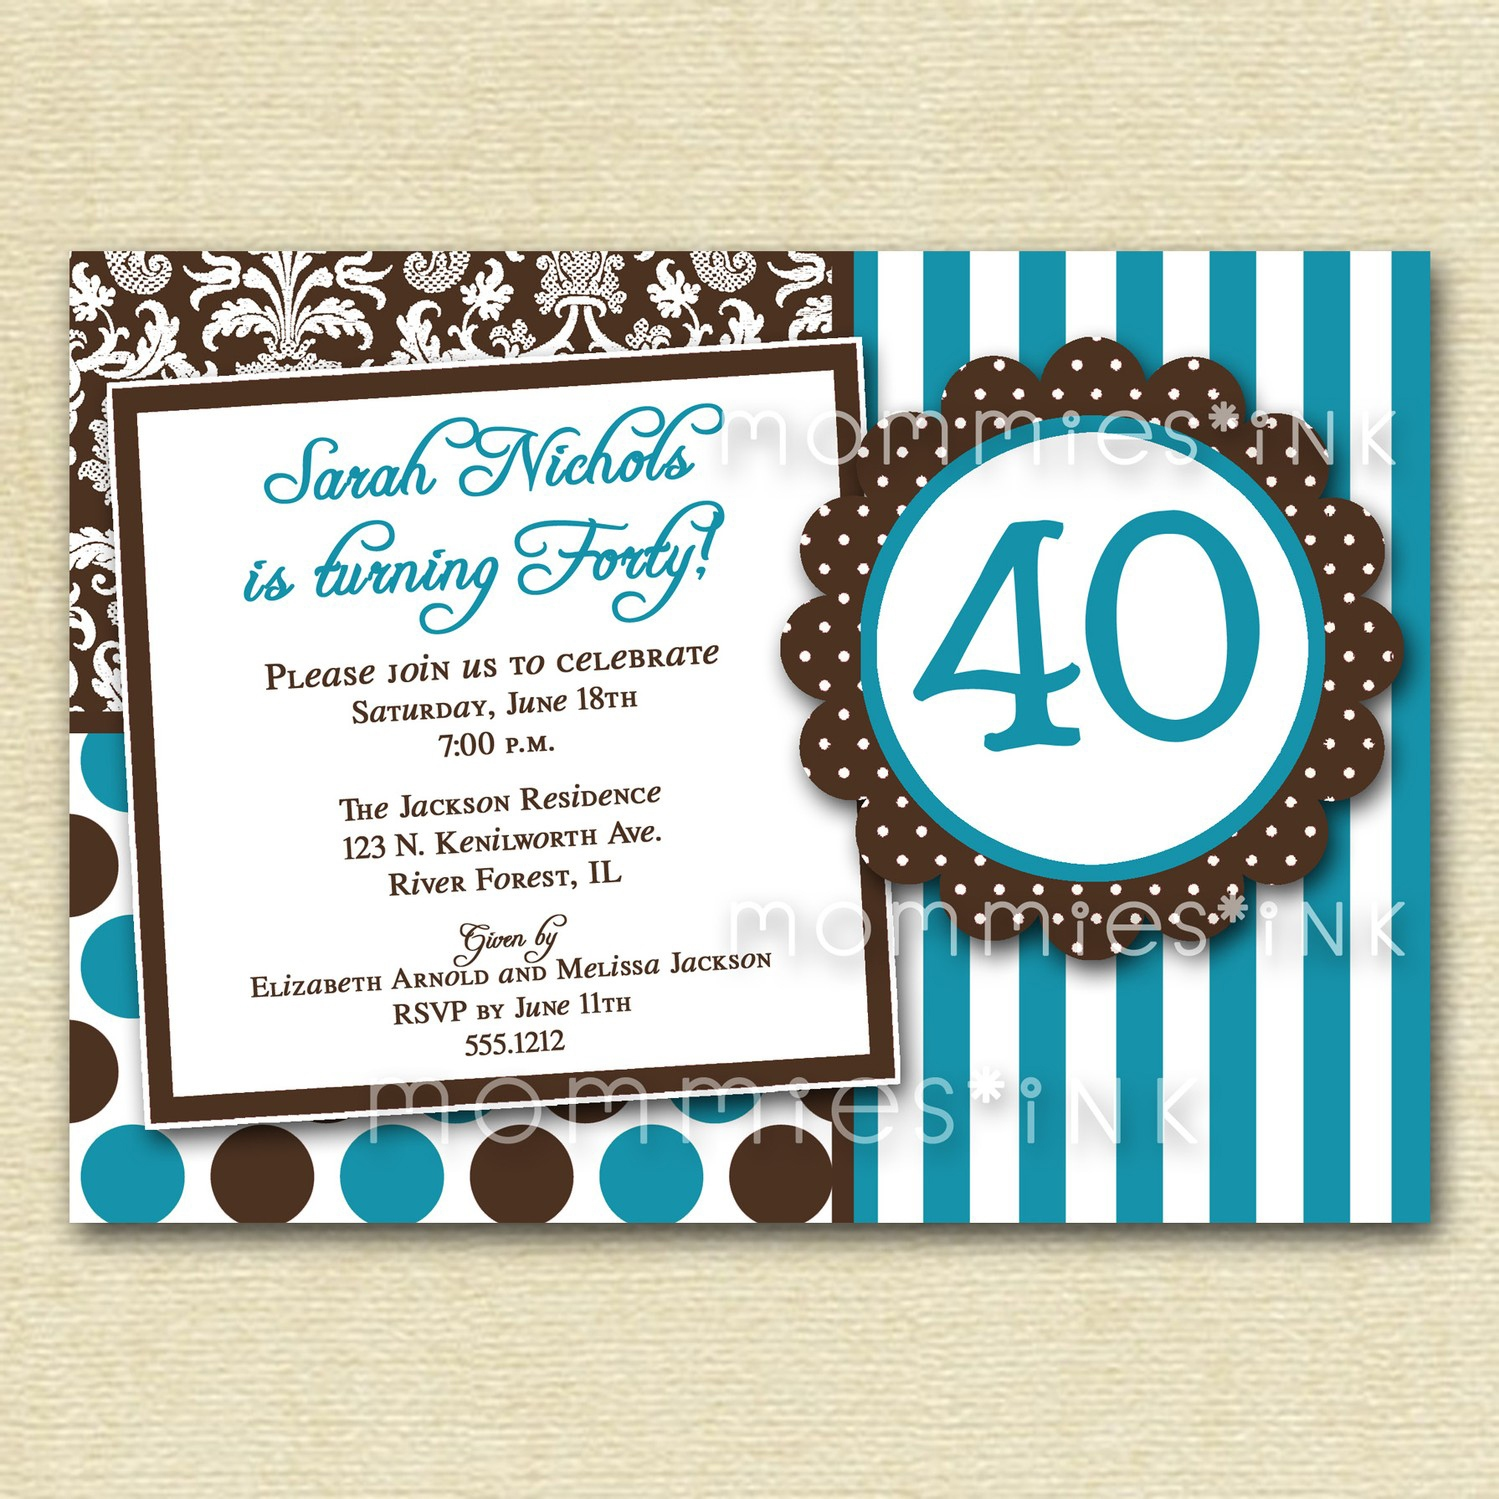 40th birthday card template free ; birthday-card-invitations-beautiful-invitations-for-40th-birthday-quotes-quotesgram-of-birthday-card-invitations